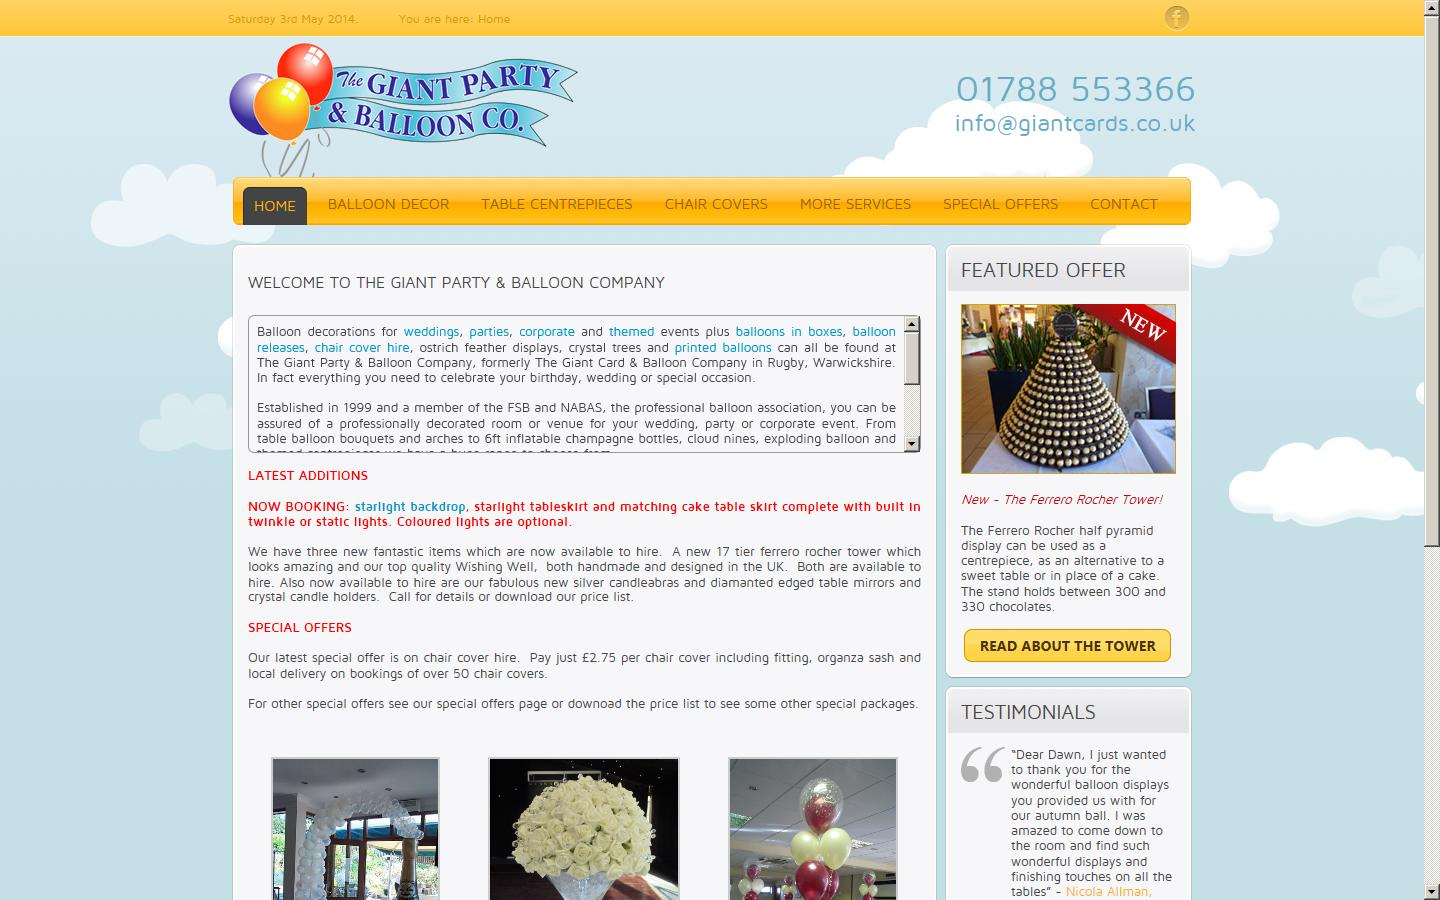 the giant card balloon company rugby warwickshire cv21 4du